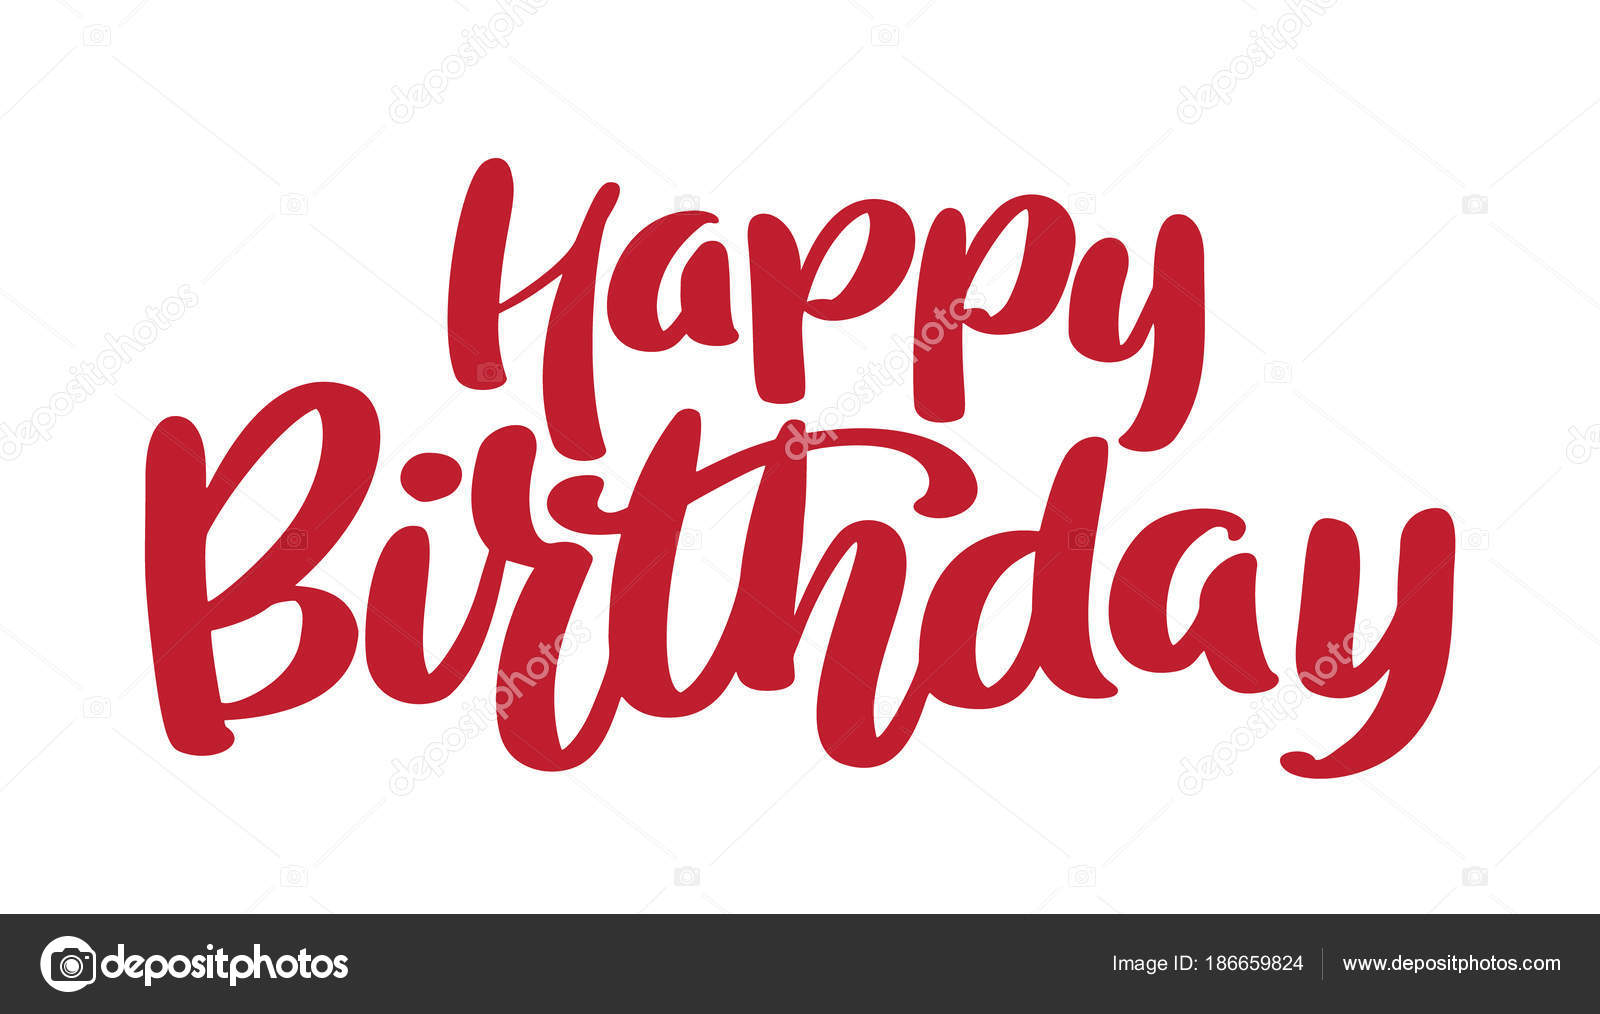 happy birthday greeting card design ; depositphotos_186659824-stock-illustration-happy-birthday-hand-drawn-text